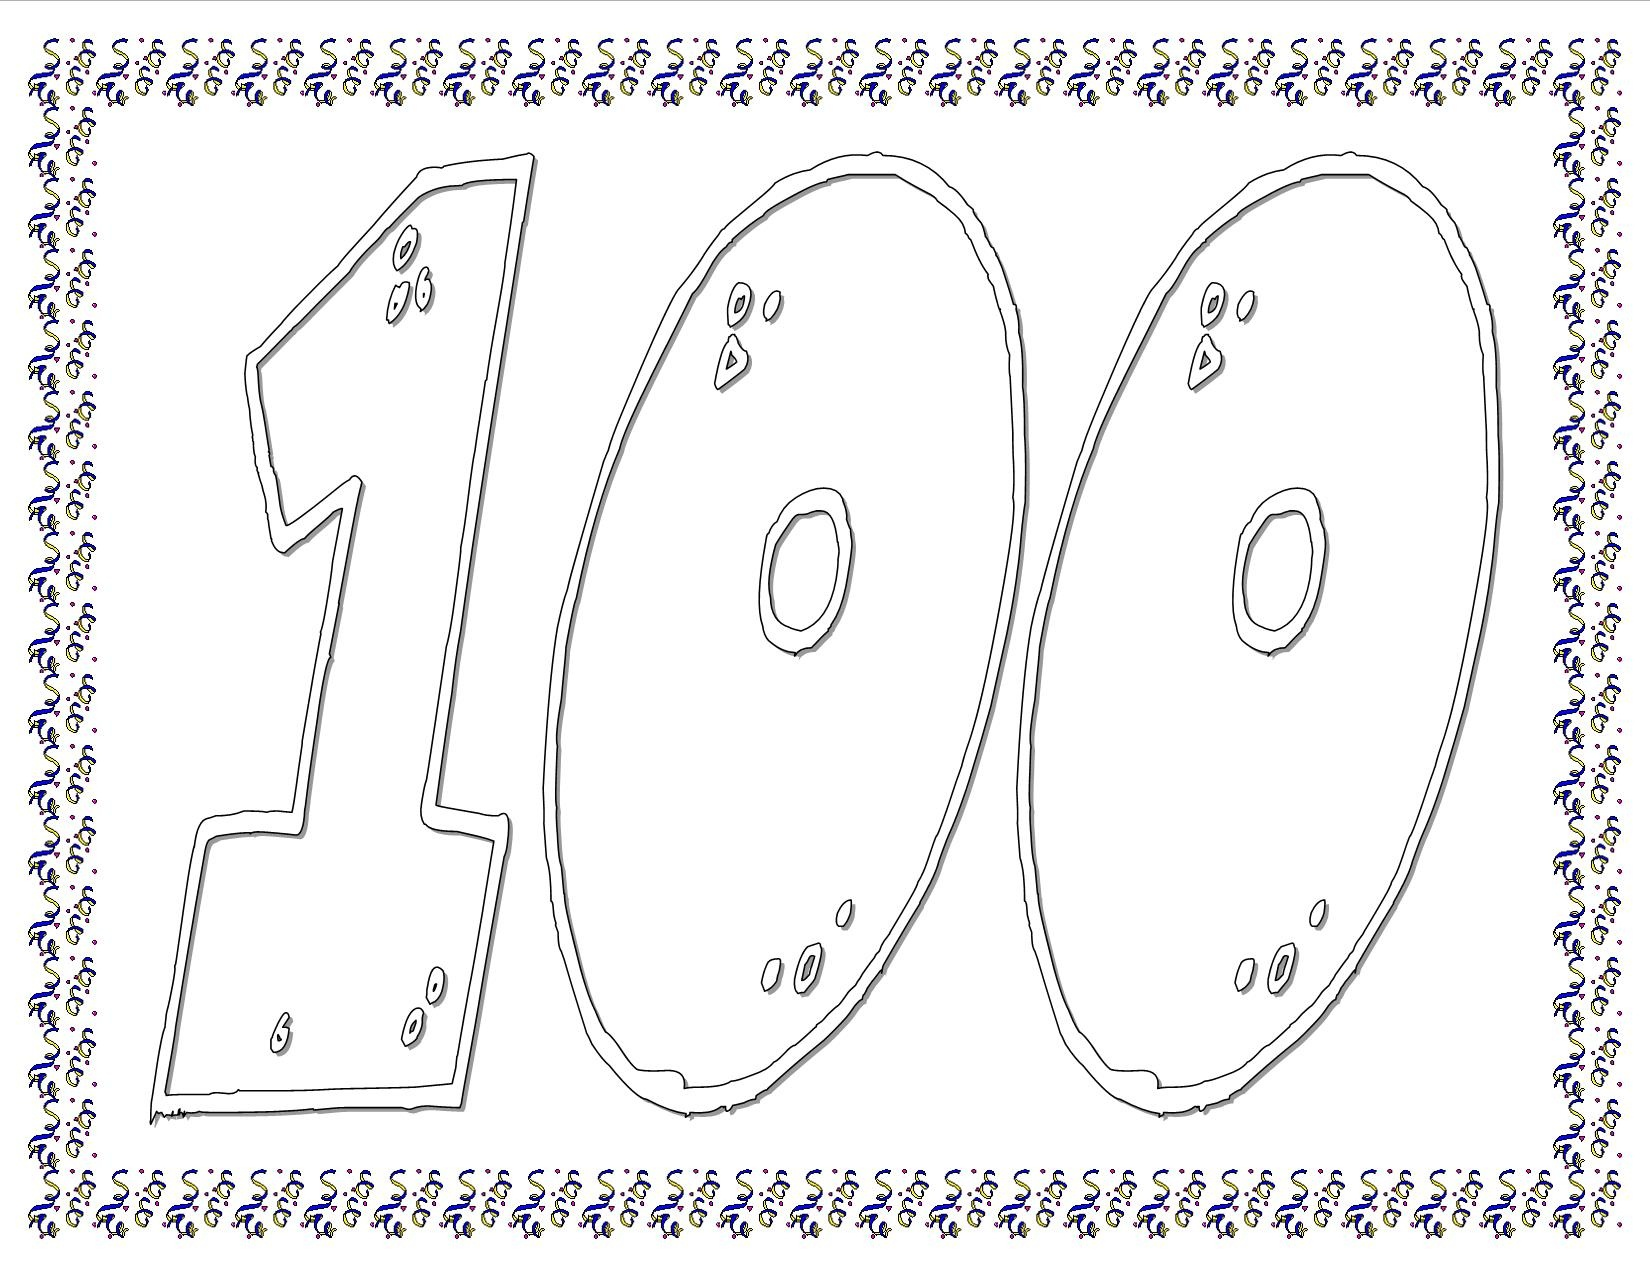 100Th Day Of School Worksheets And Printouts - 100 Days Of School Free Printables